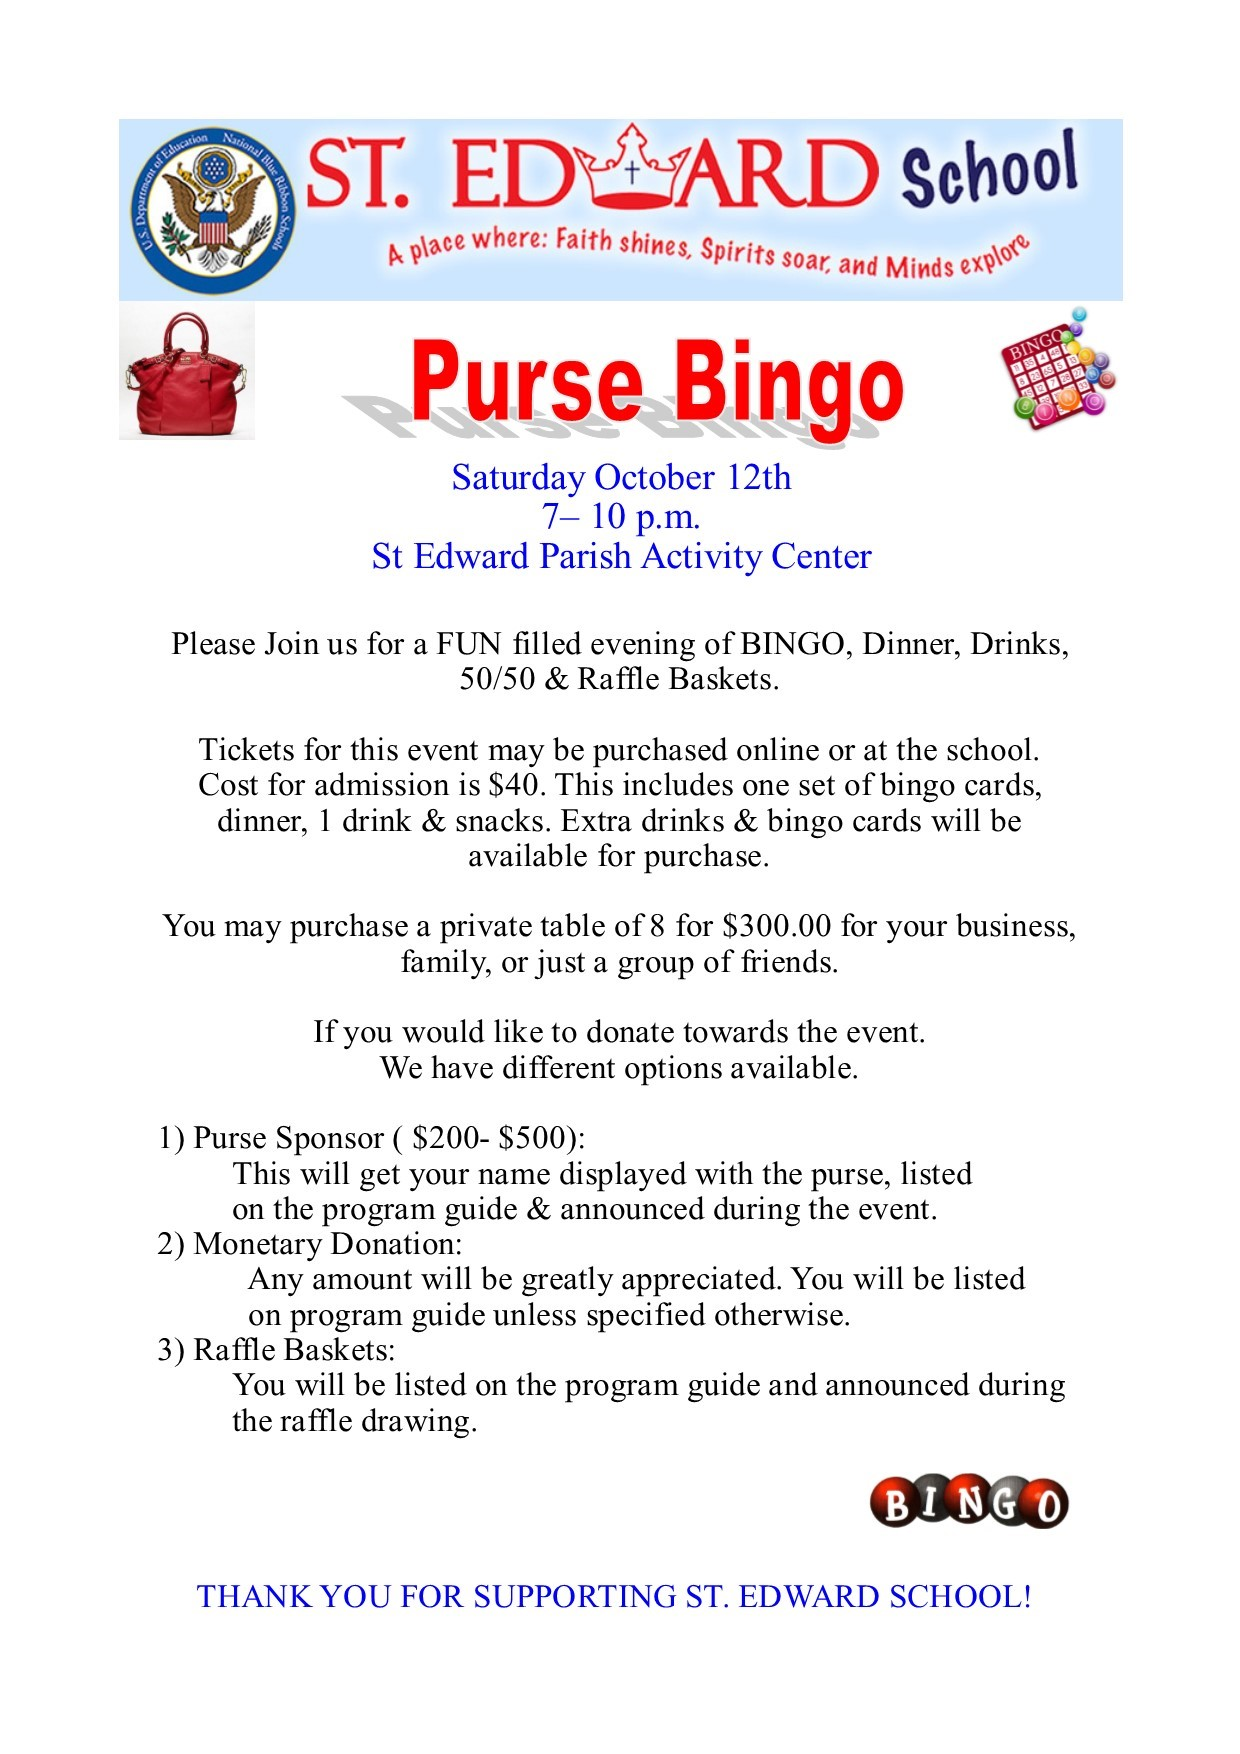 St. Edward Purse Bingo  on Oct 12, 19:00@Parish Activity Center - Buy tickets and Get information on stedwardashland.org